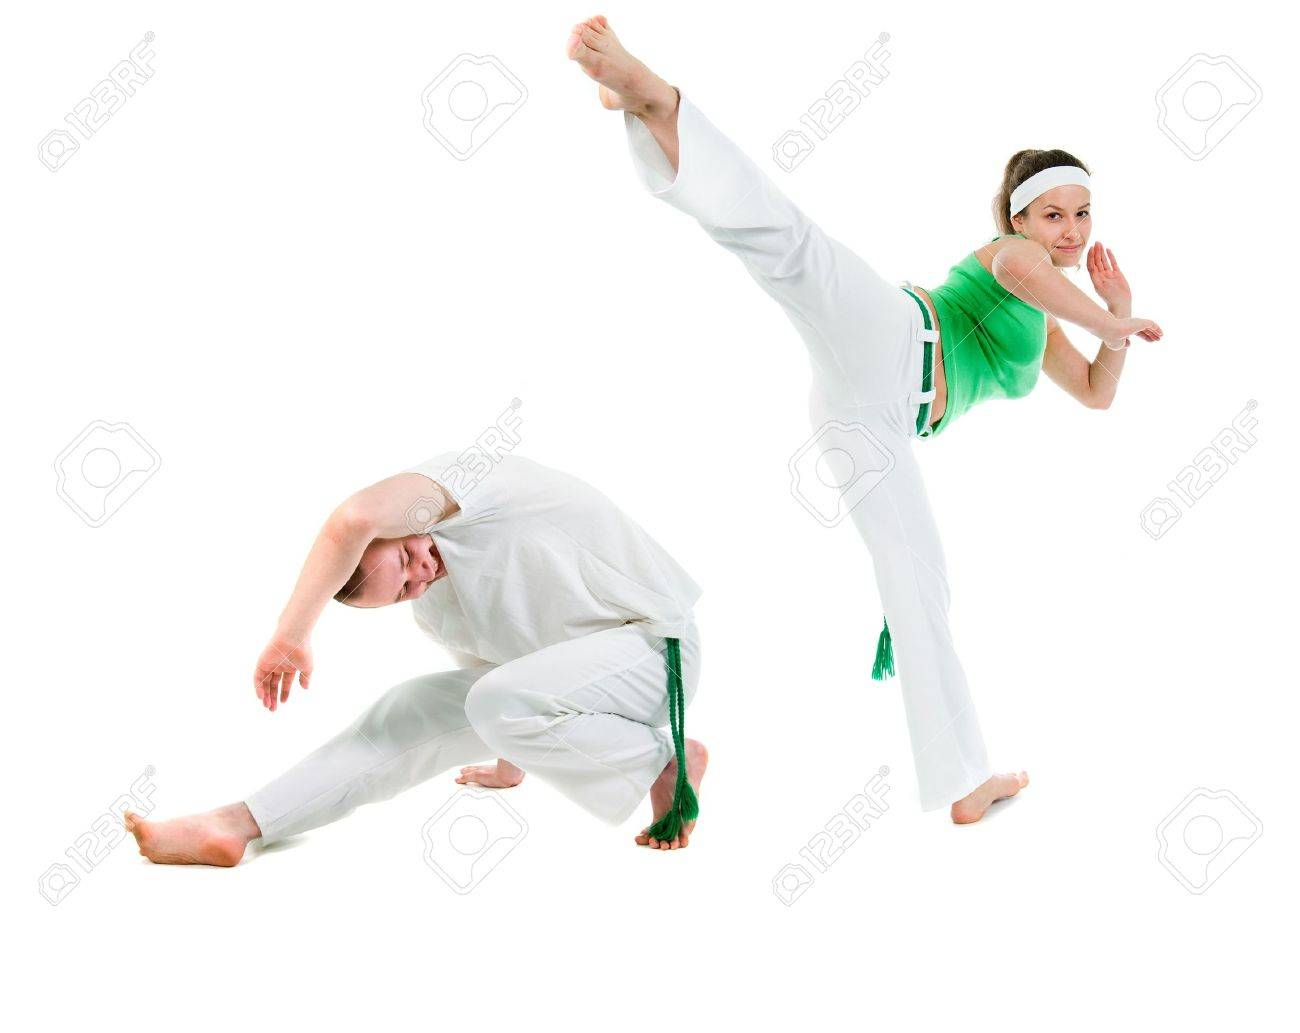 Capoeira Images & Stock Pictures. Royalty Free Capoeira Photos And ...